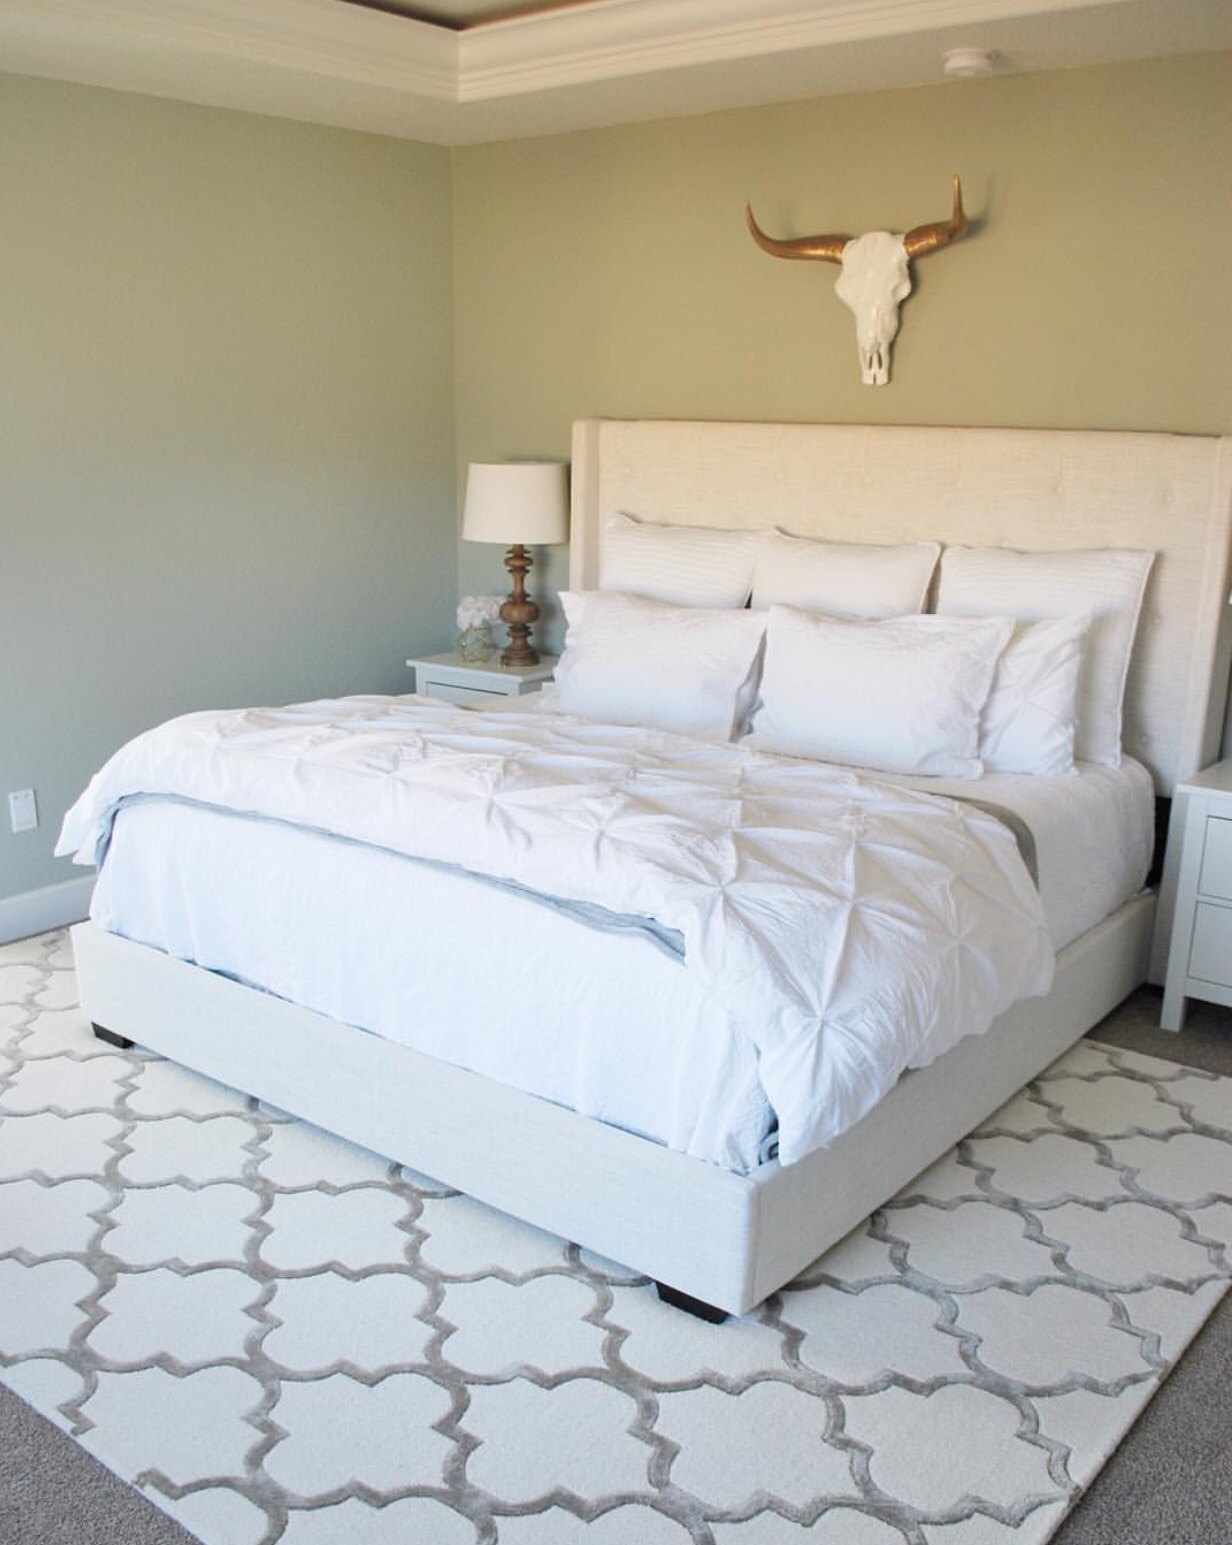 review of the edison nickel area rug paint the world white by brynne. Black Bedroom Furniture Sets. Home Design Ideas